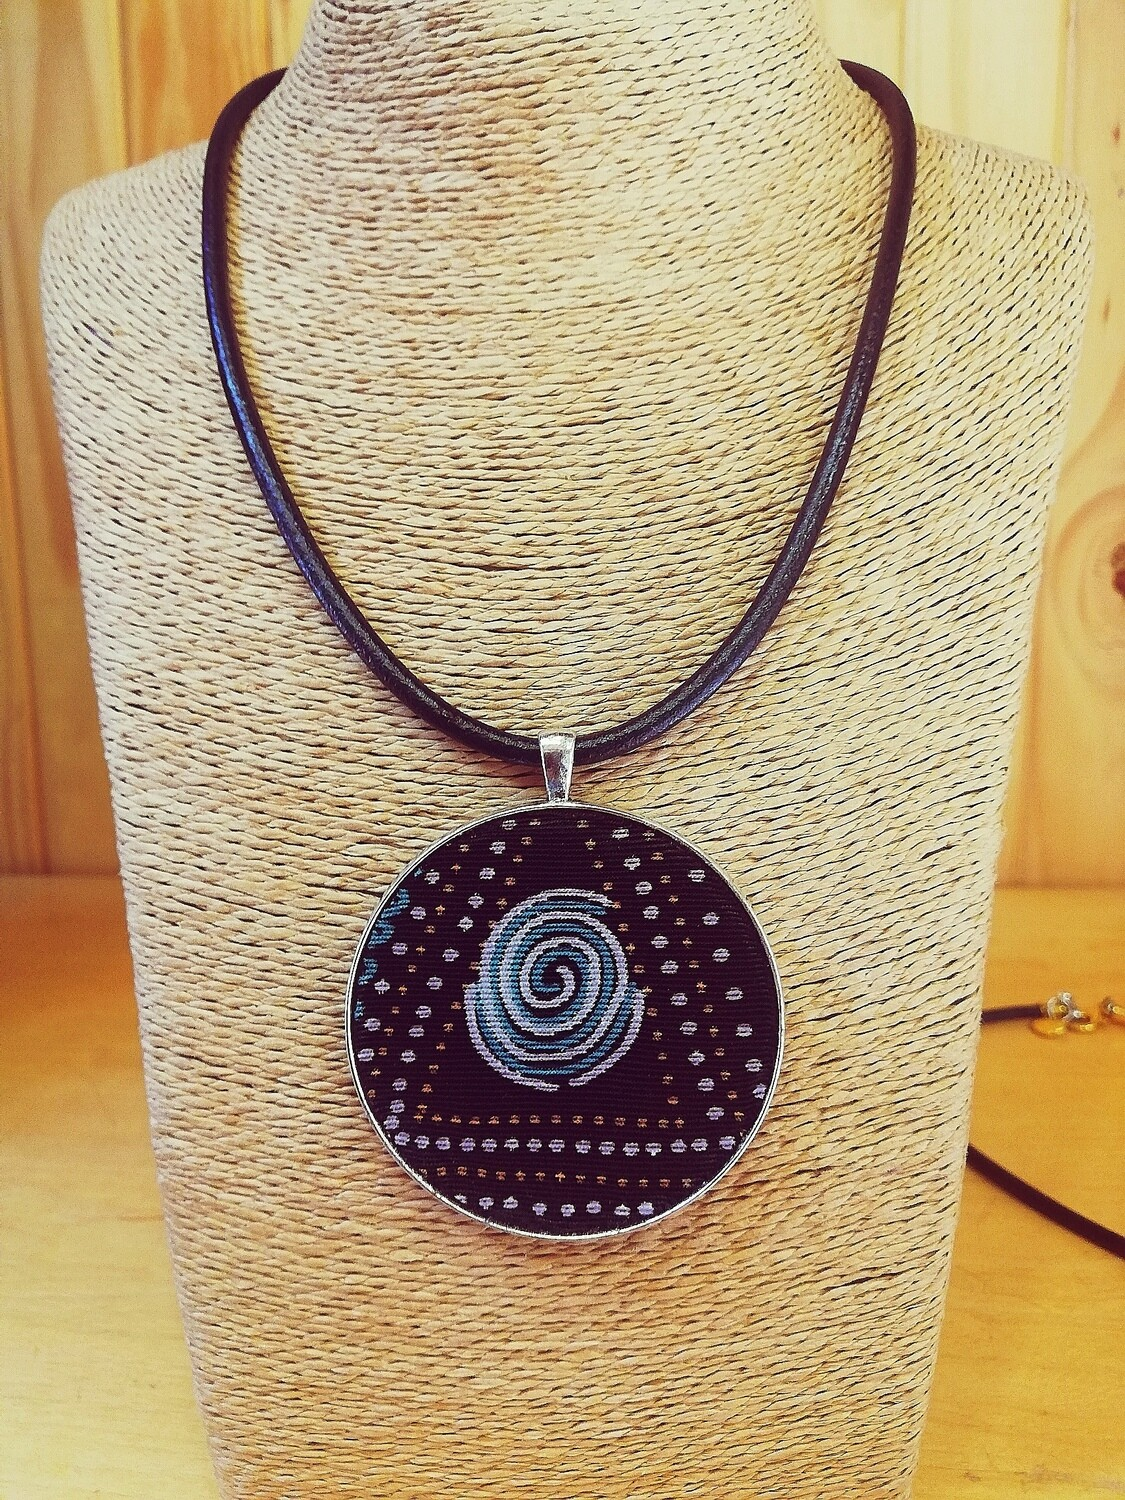 Modern art at it's best, 100% leather necklace